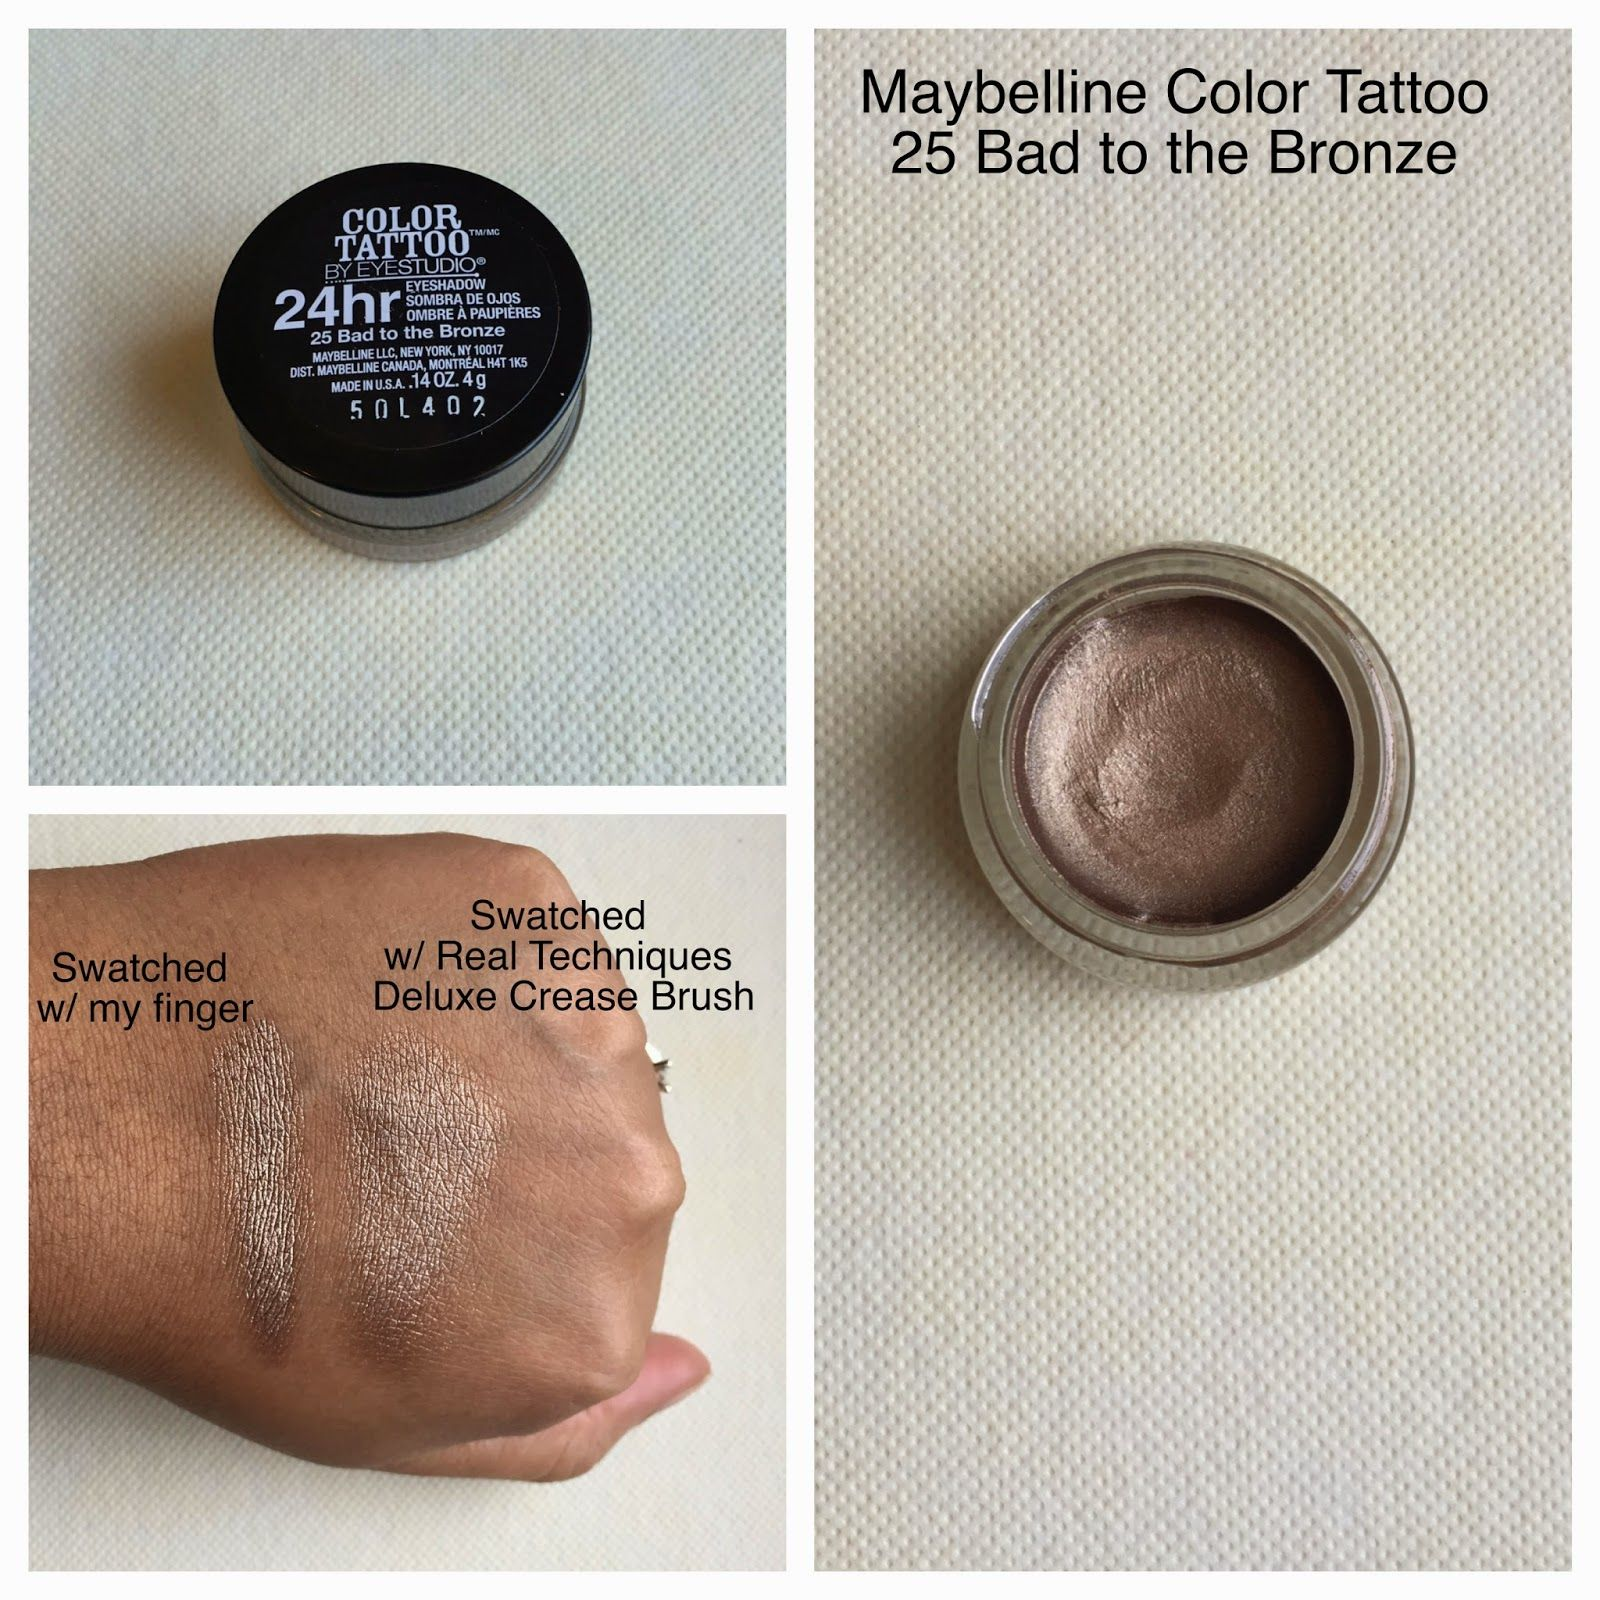 Maybelline color tattoo 25 bad to the bronze review and swatch maybelline color tattoo 25 bad to the bronze review and swatch baditri Image collections